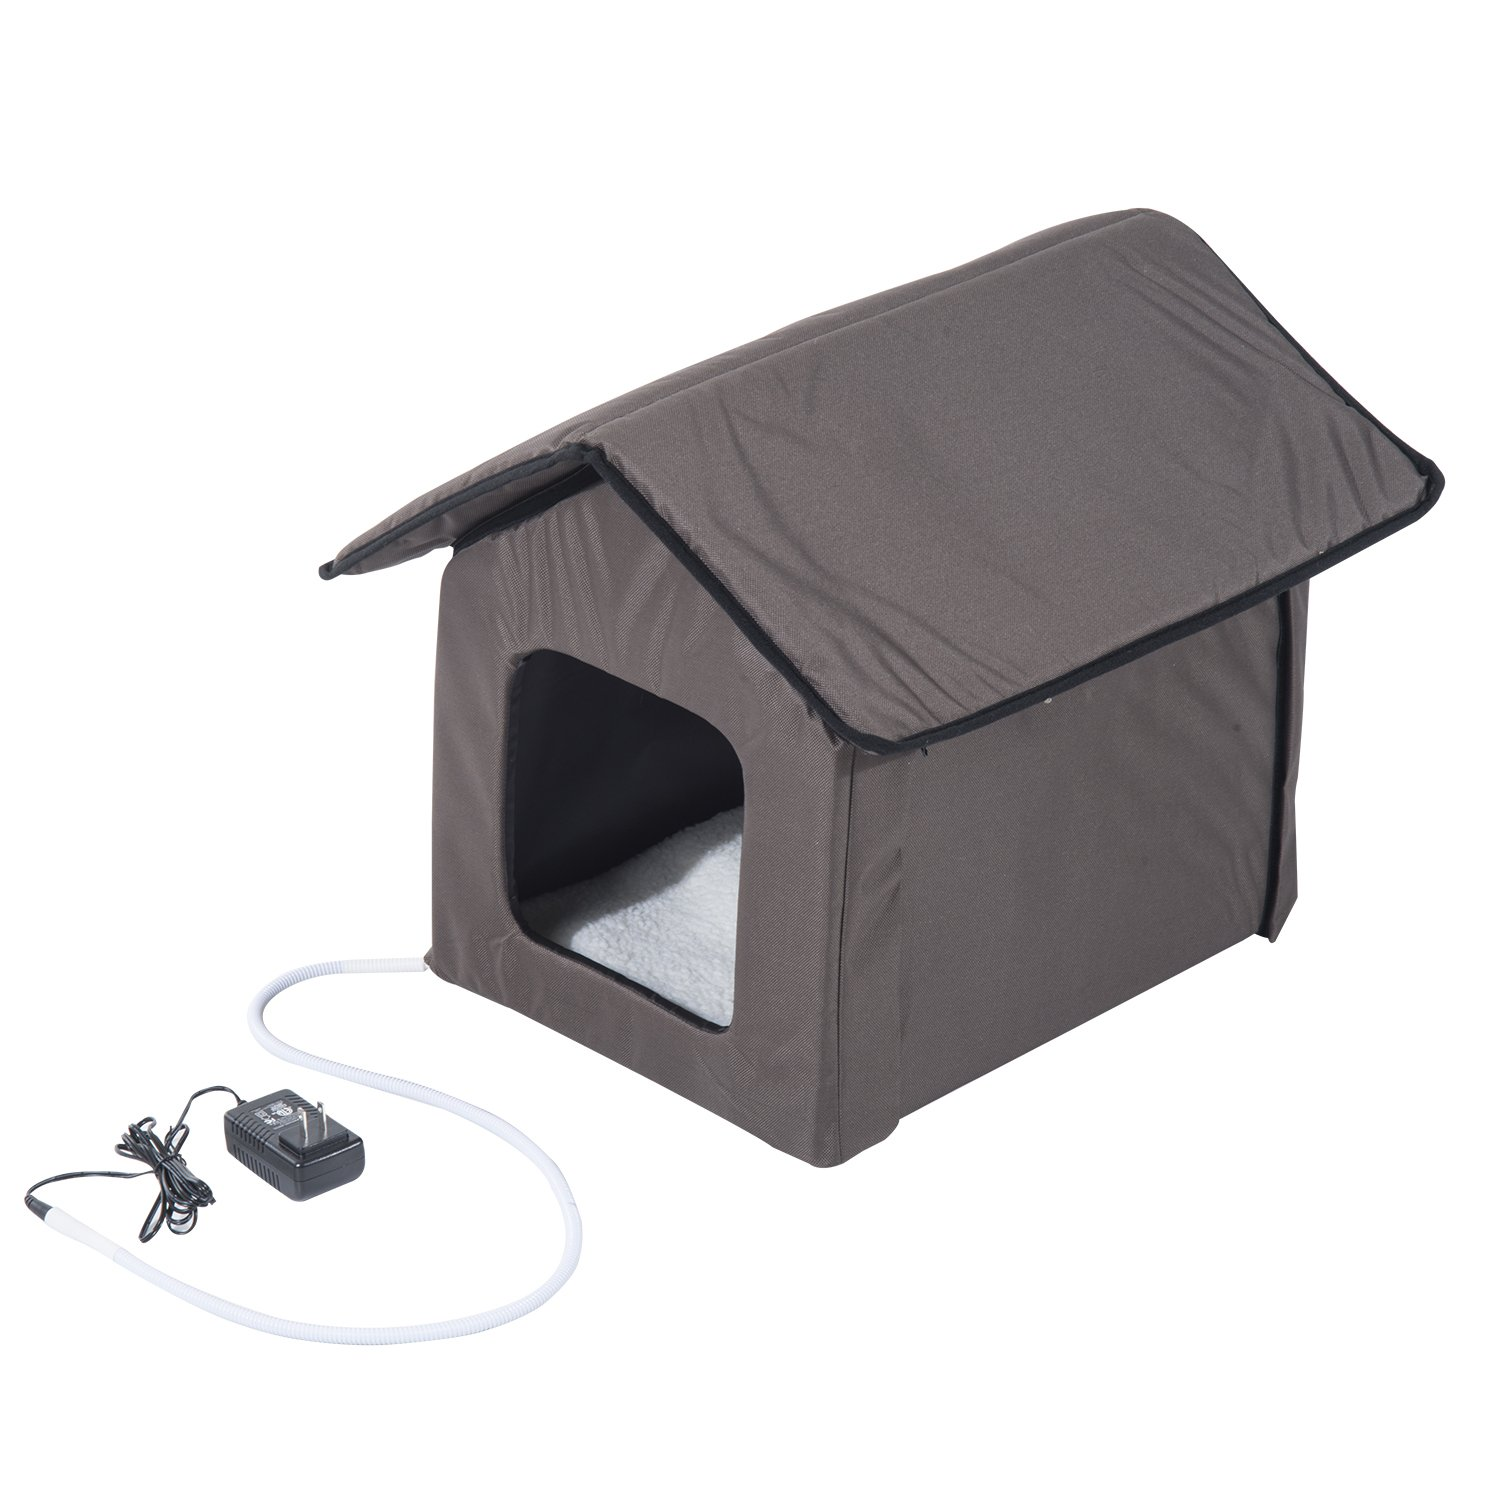 PawHut Small Indoor Outdoor Portable Water Resistant Heated Cat House - Brown by PawHut